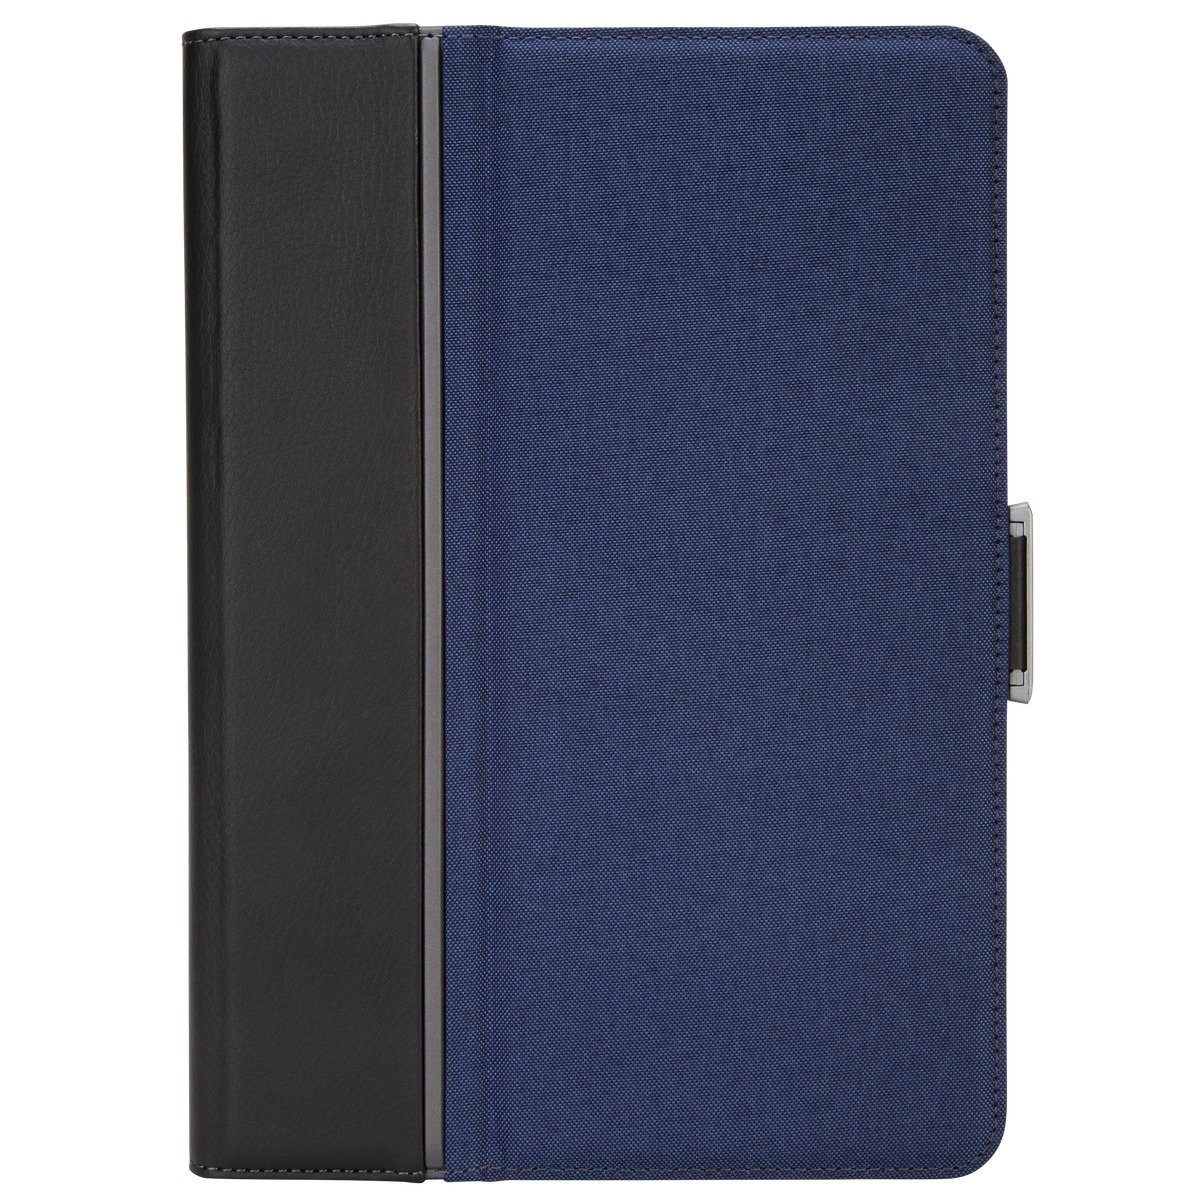 Targus VersaVu Signature Series Rotating Case and Stand for 10.5-inch iPad Pro, Blue, THZ67202GL